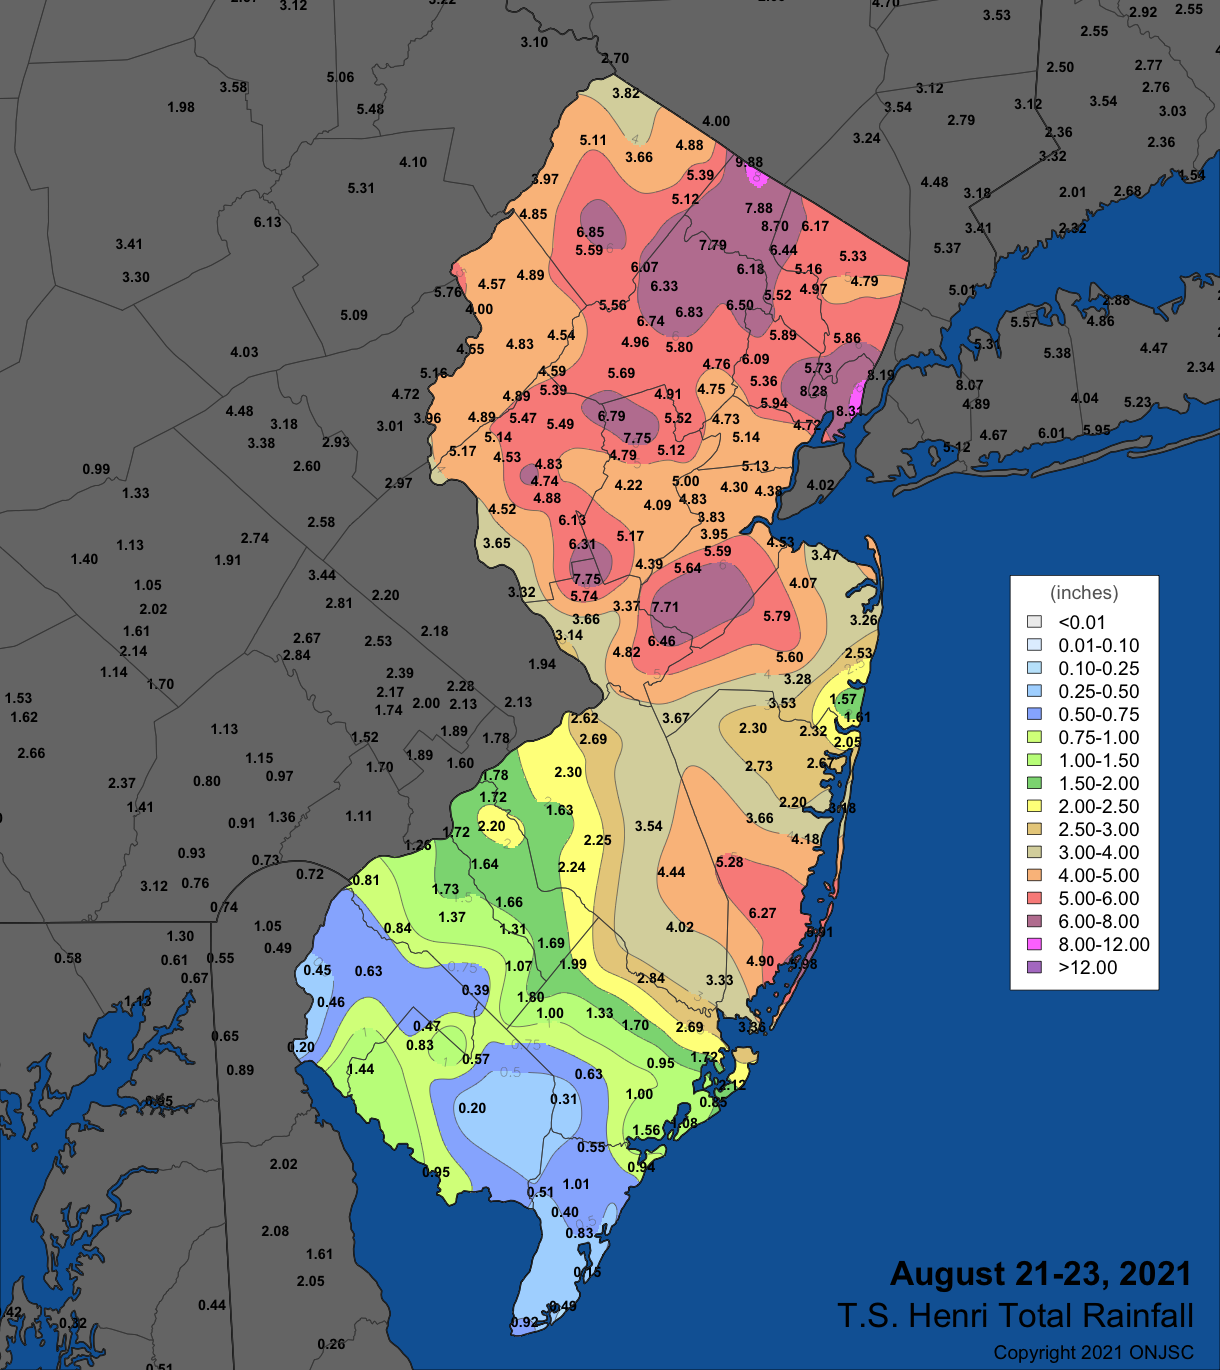 Rainfall from August 21st to 23rd based on an ONJSC analysis generated using observations from NWS Cooperative, CoCoRaHS, NJWxNet, and a few other smaller networks